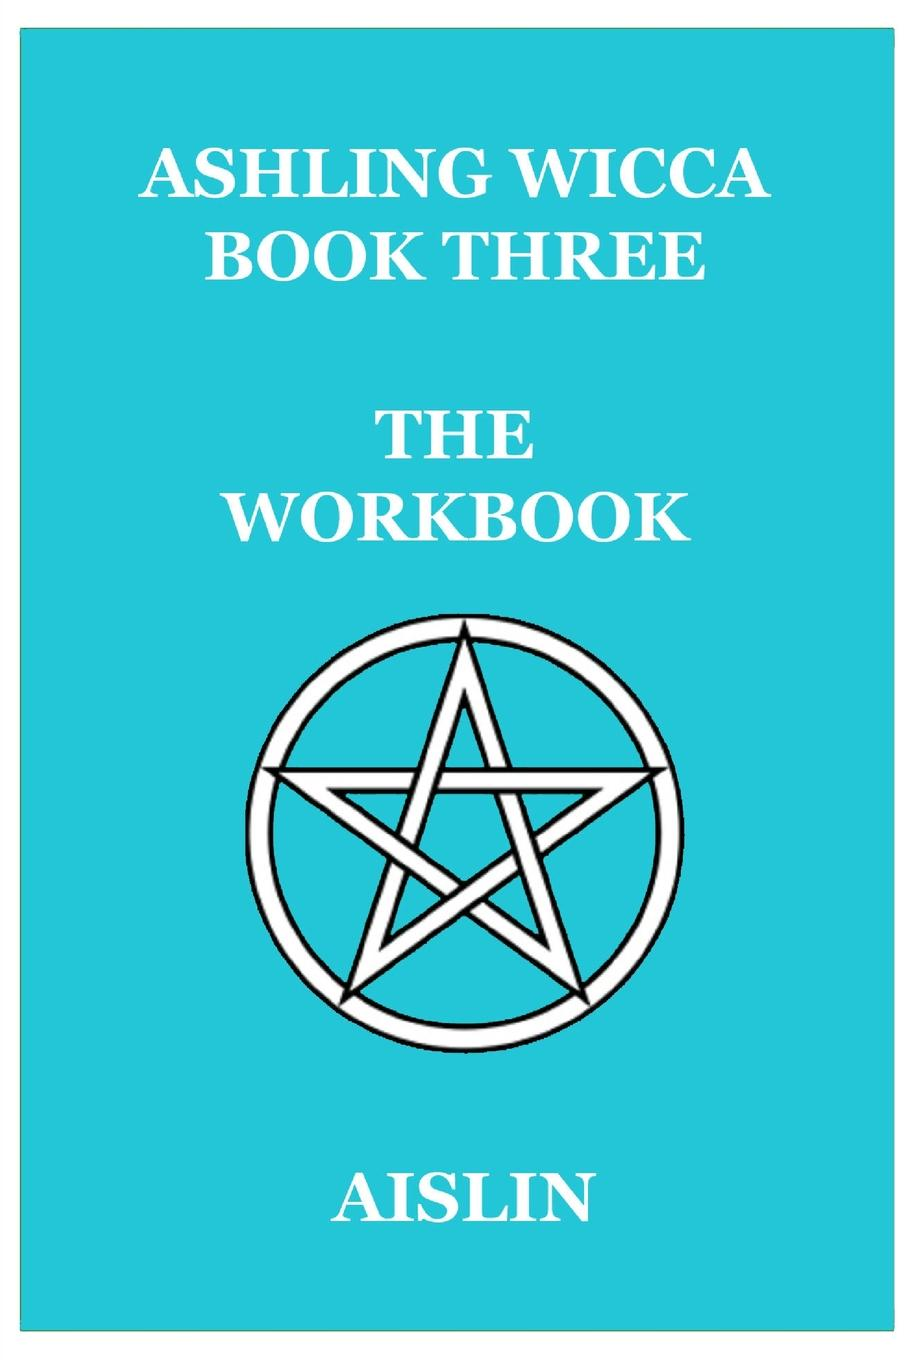 Aislin Ashling Wicca, Book Three. The Workbook various the book of three hundred anecdotes